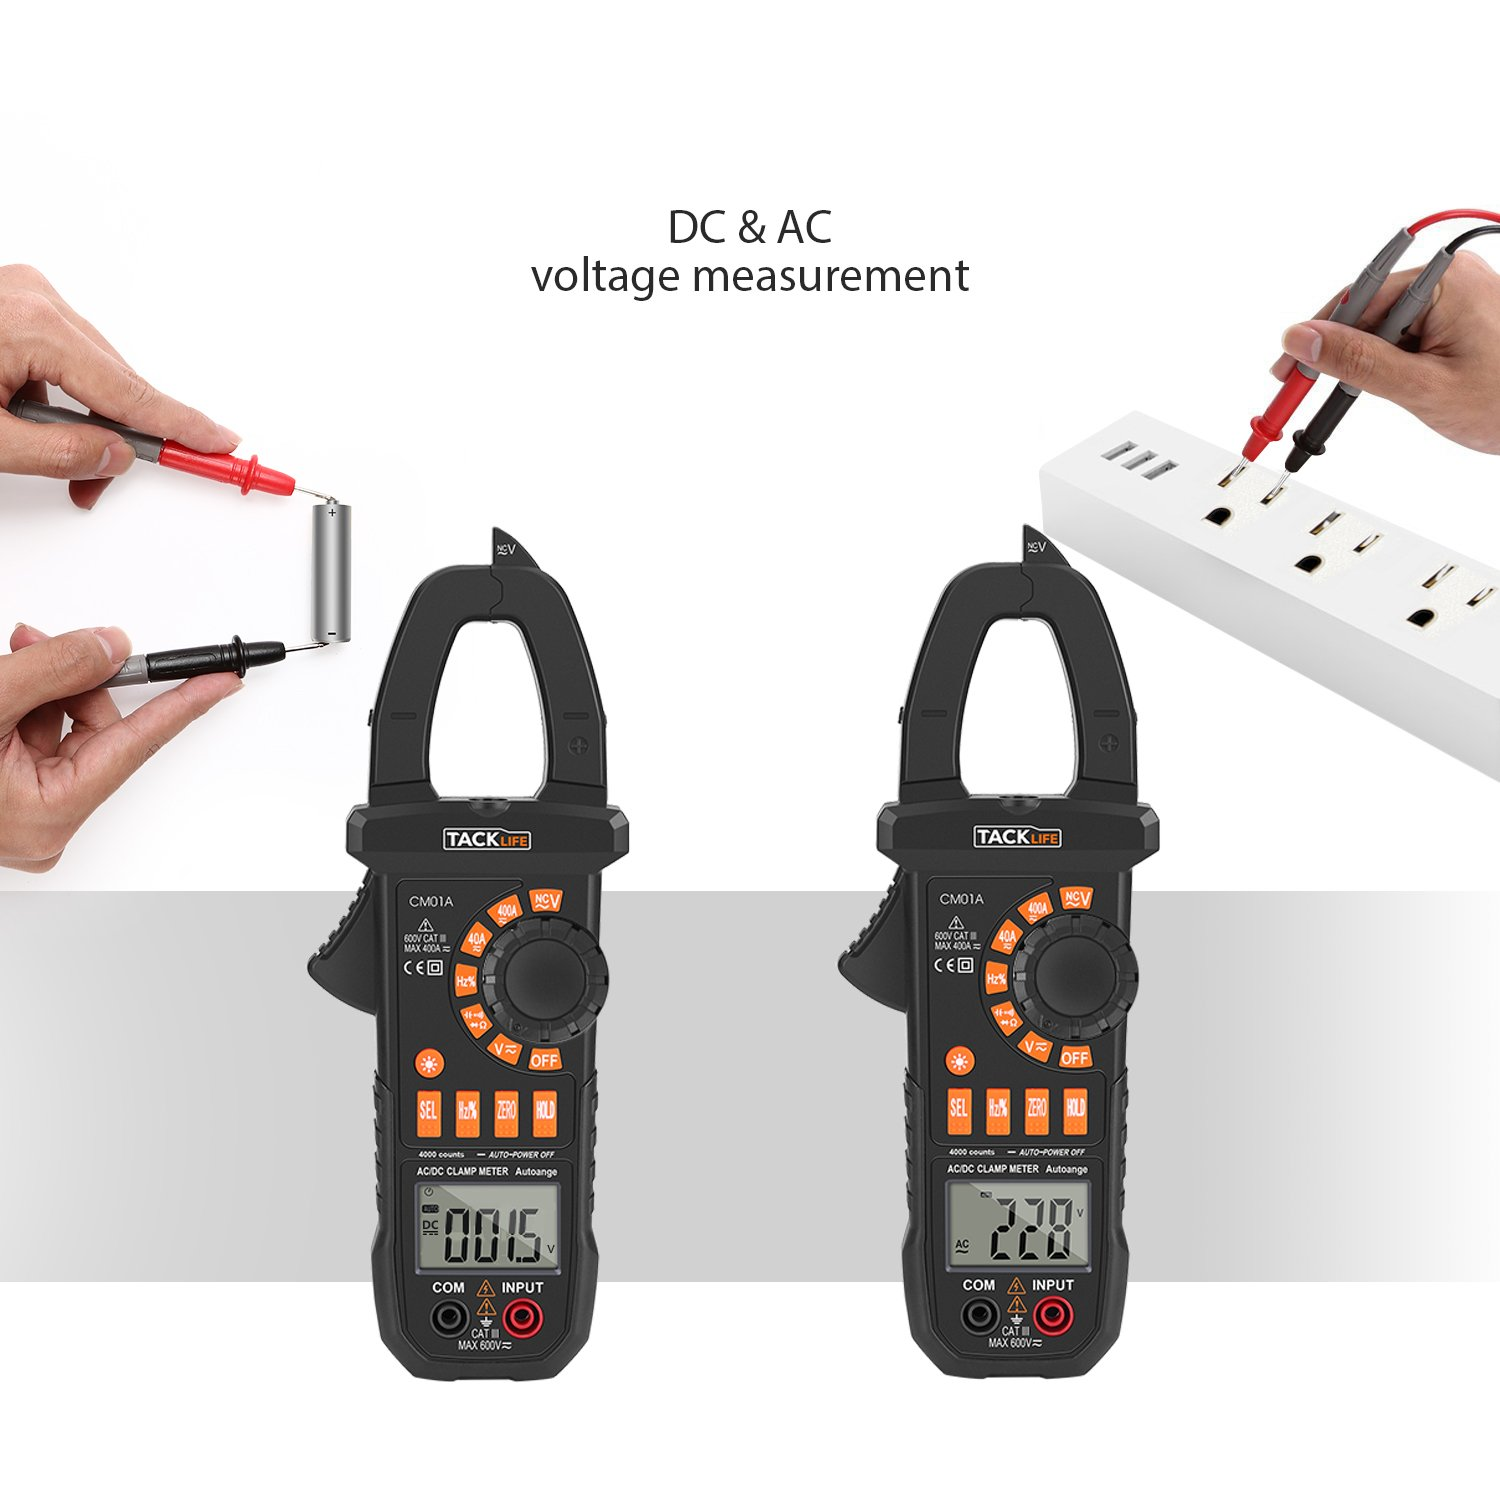 Multimeter, Tacklife CM01A Clamp Meter 4000 Counts Auto-Ranging Digital Tester with NCV, AC/DC Voltage, Current, Ohm, Continuity Electrical Tester, Diode, Resistance,Capacitance Meters by TACKLIFE (Image #3)